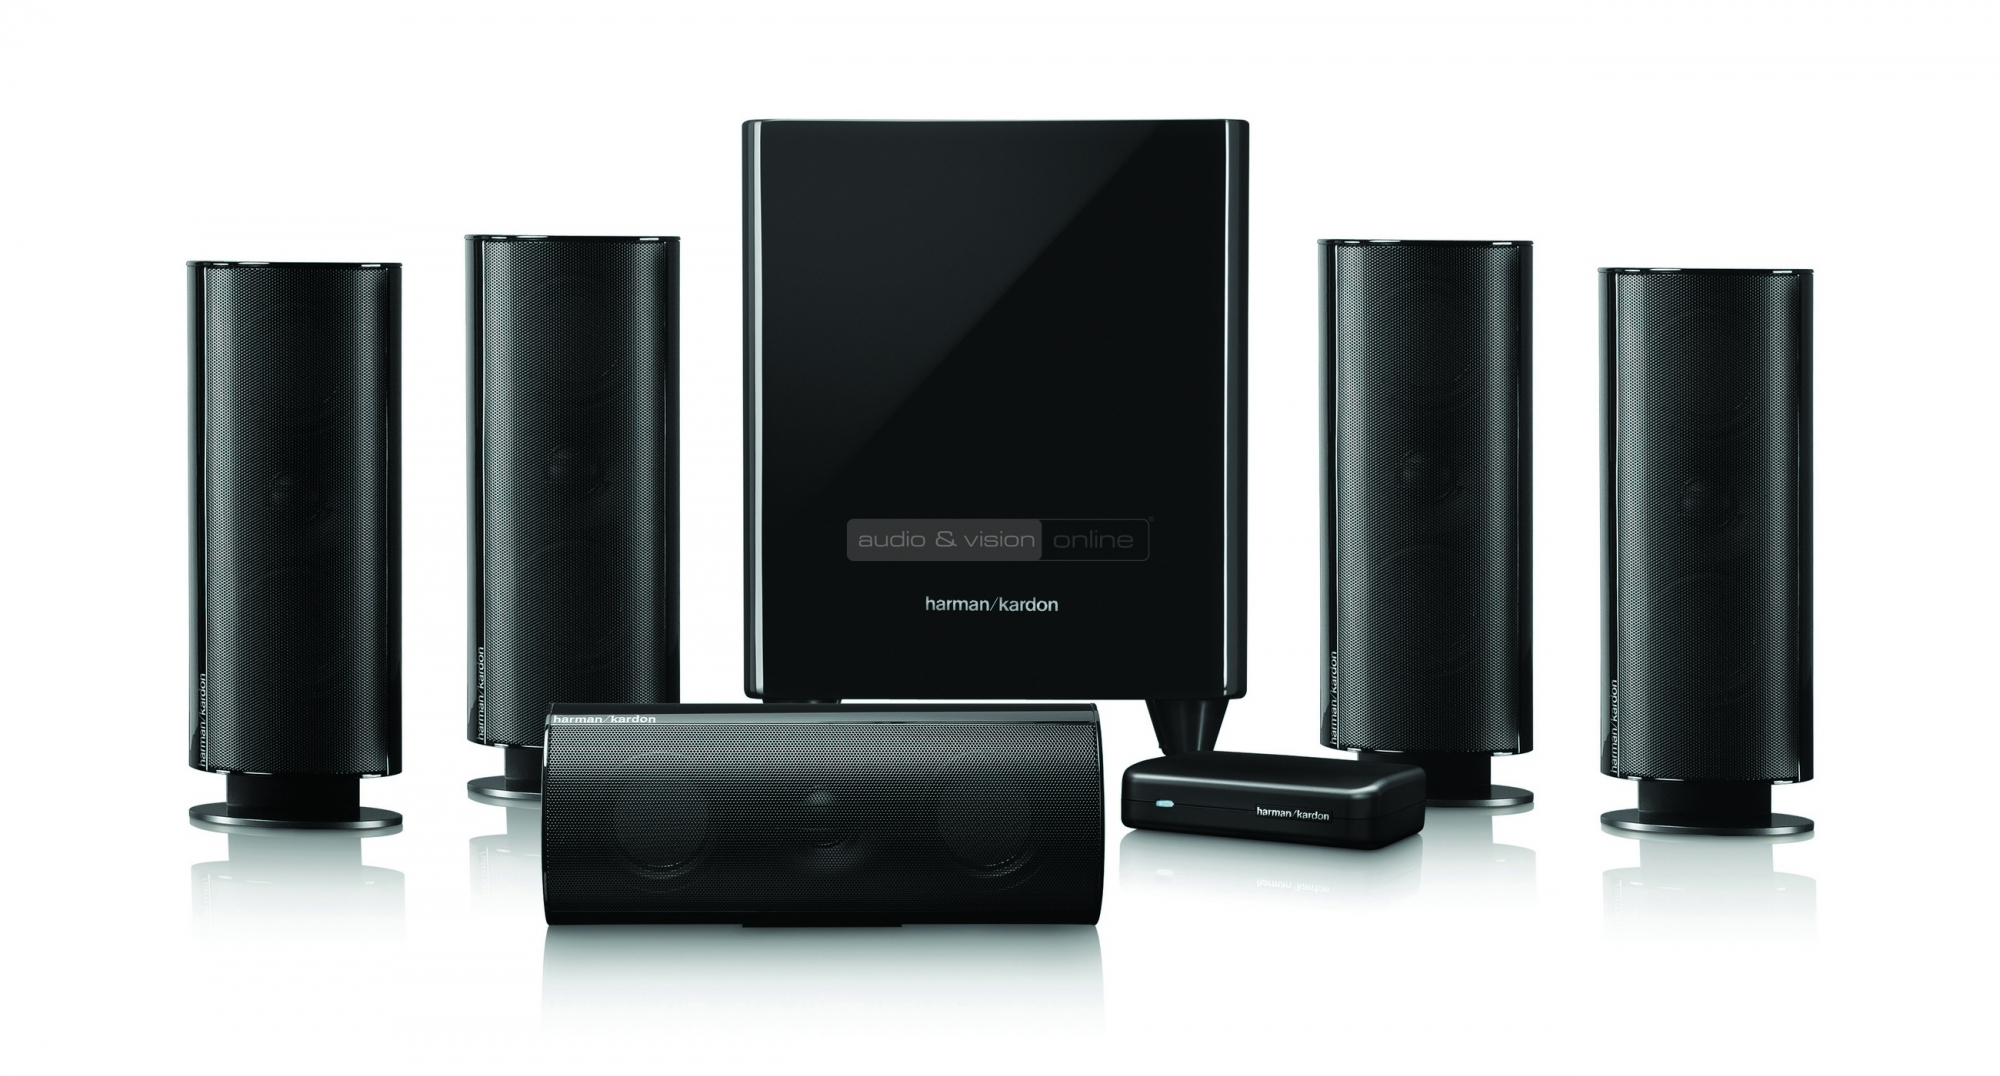 harman kardon hkts 65bq h zimozi hangfalszett teszt av. Black Bedroom Furniture Sets. Home Design Ideas